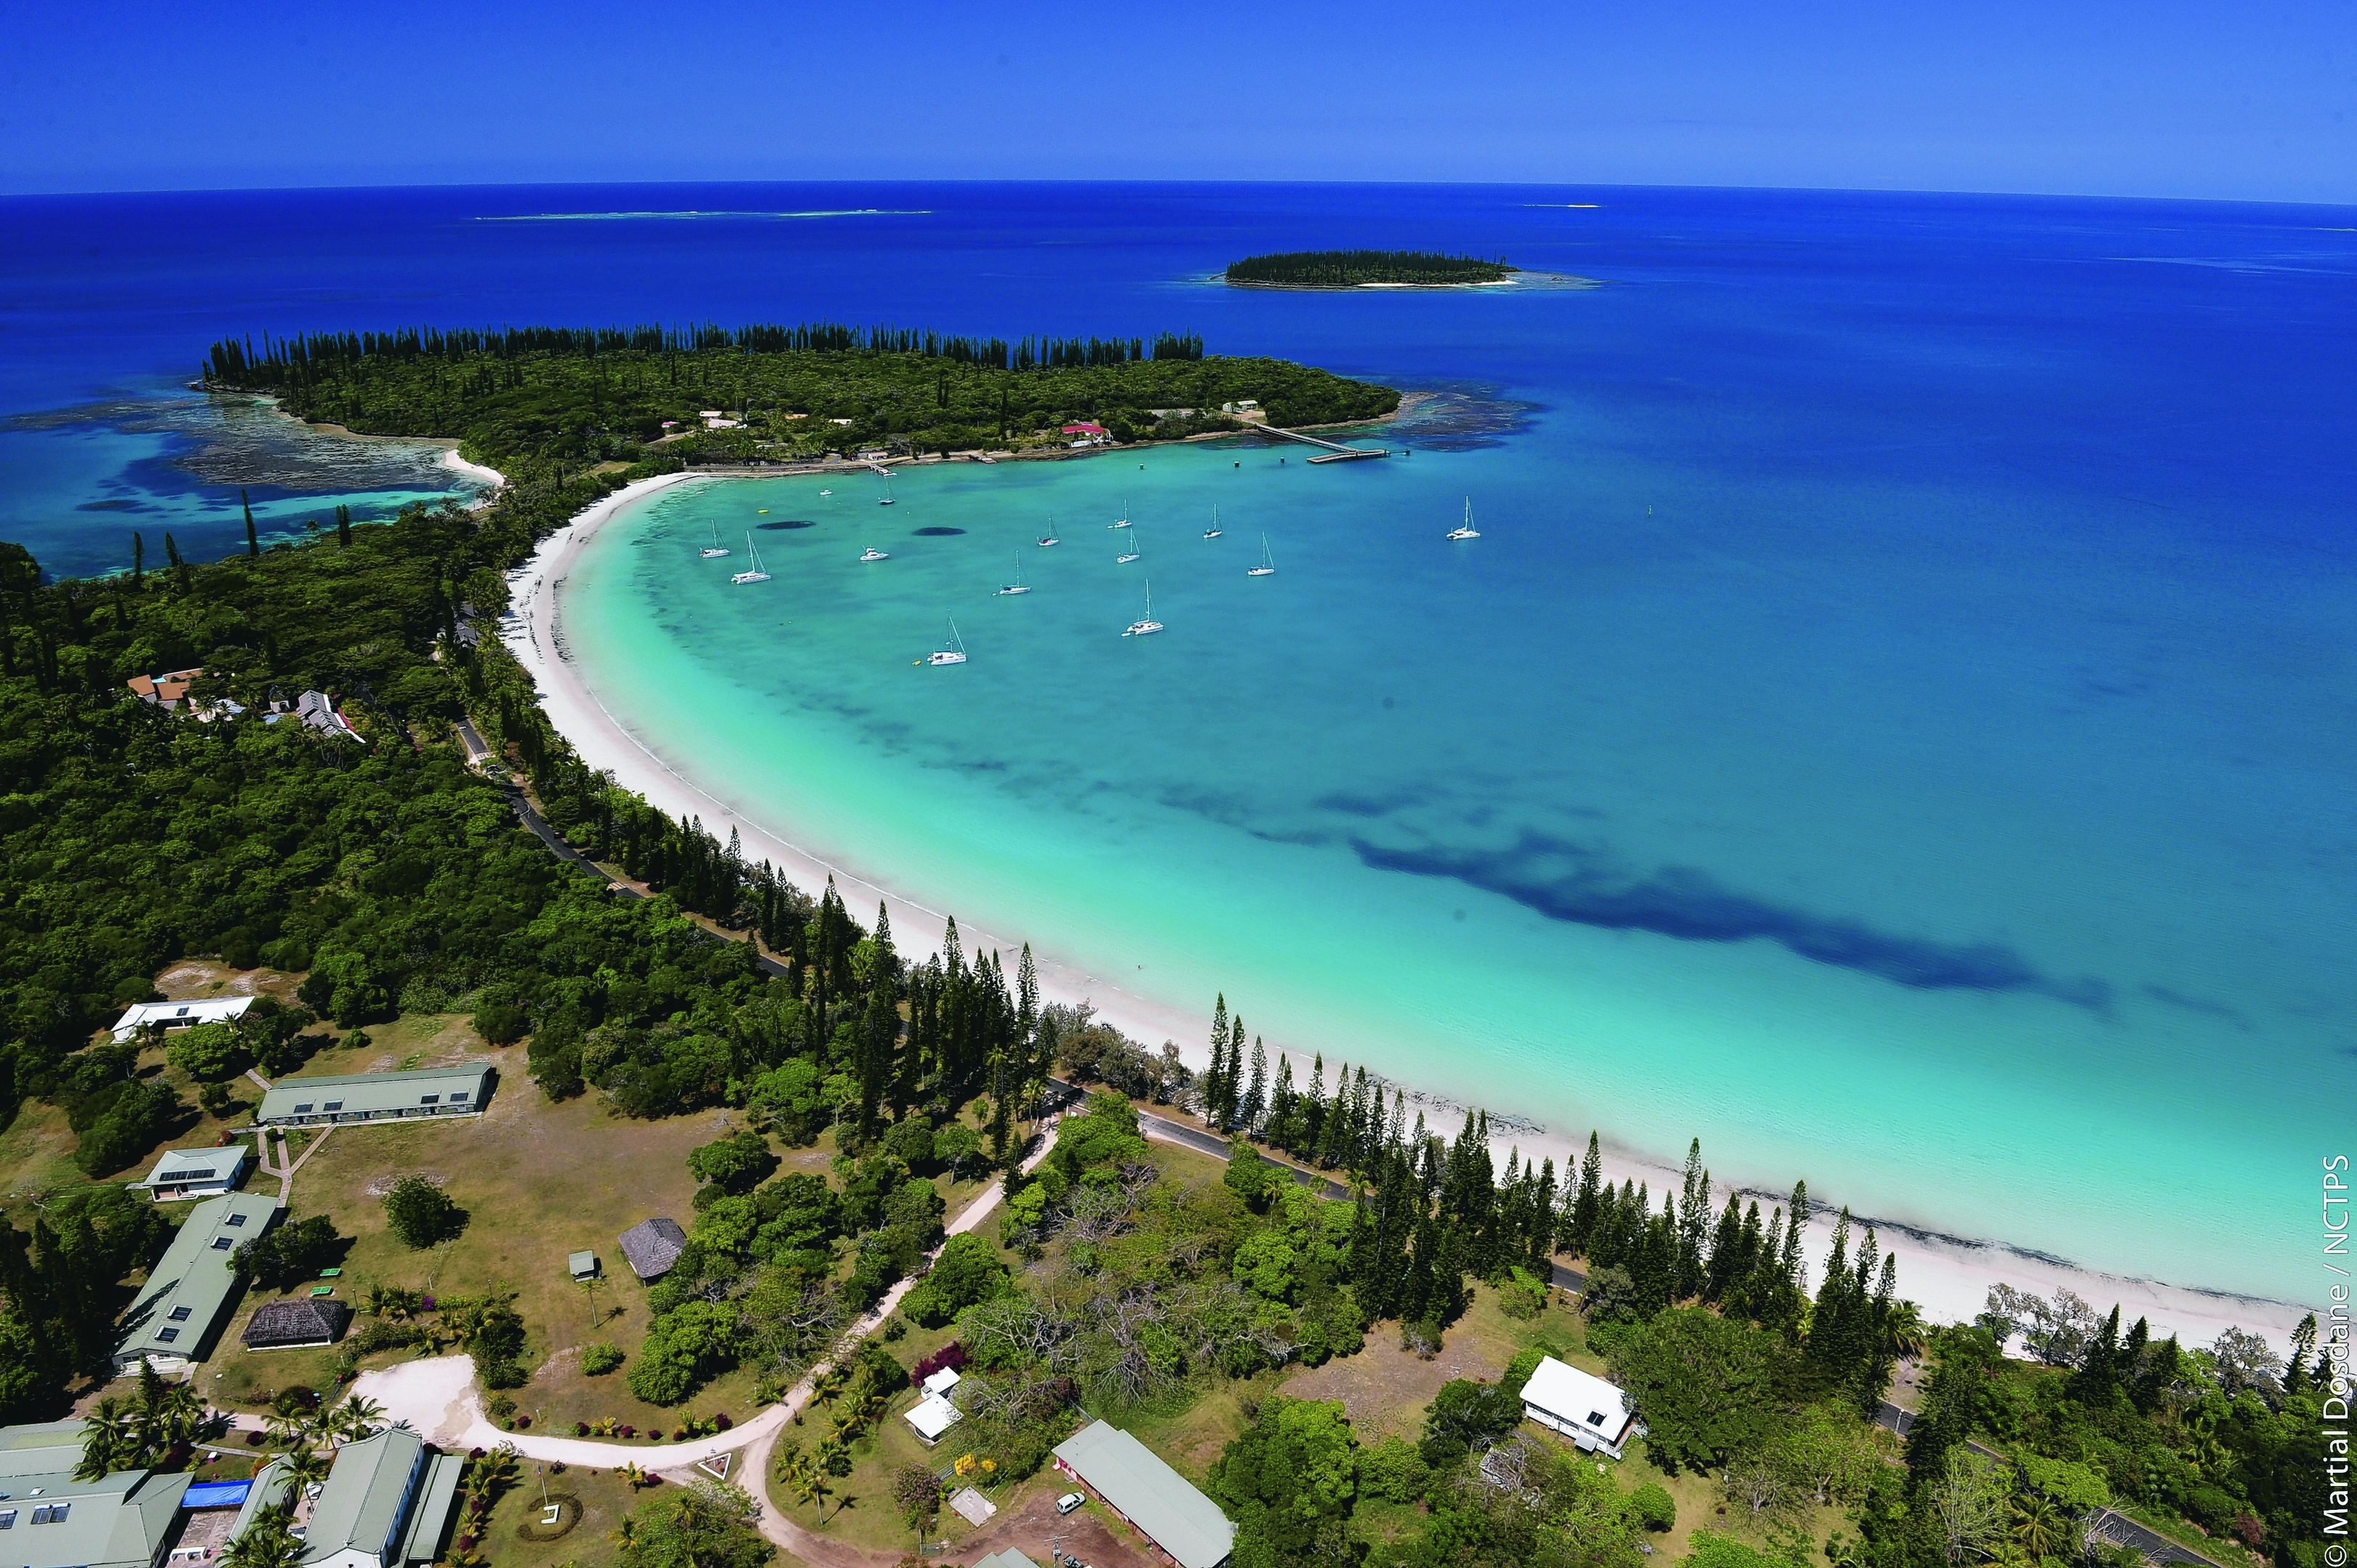 Isle of Pines beach, the lure of crystal clear waters